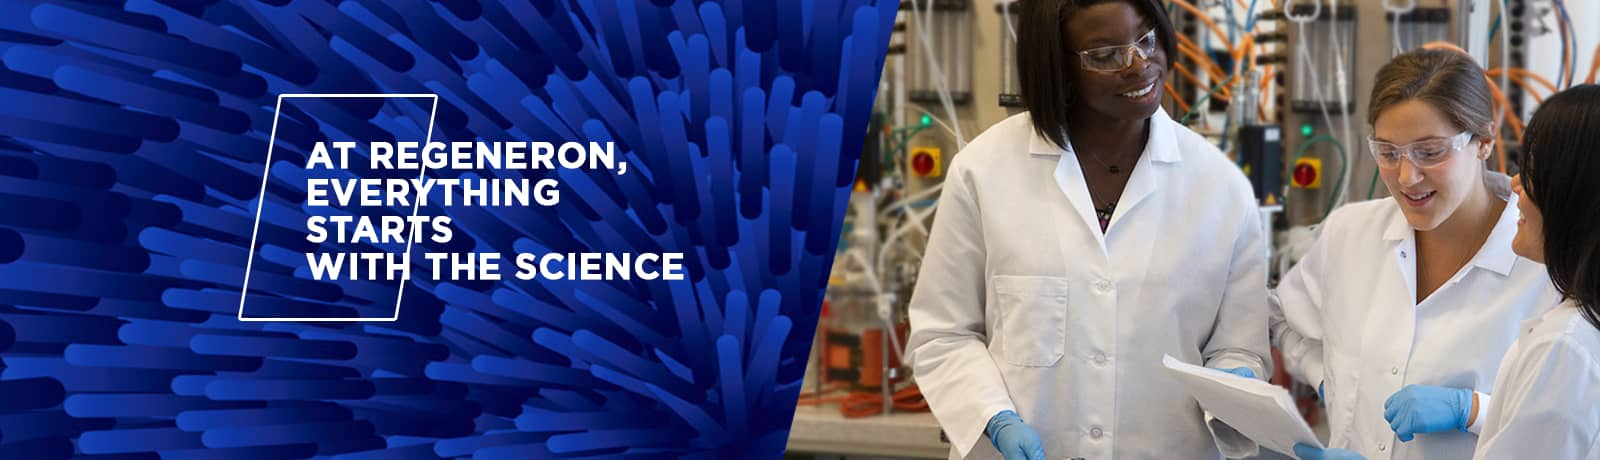 everything-starts-with-science-at-regeneron